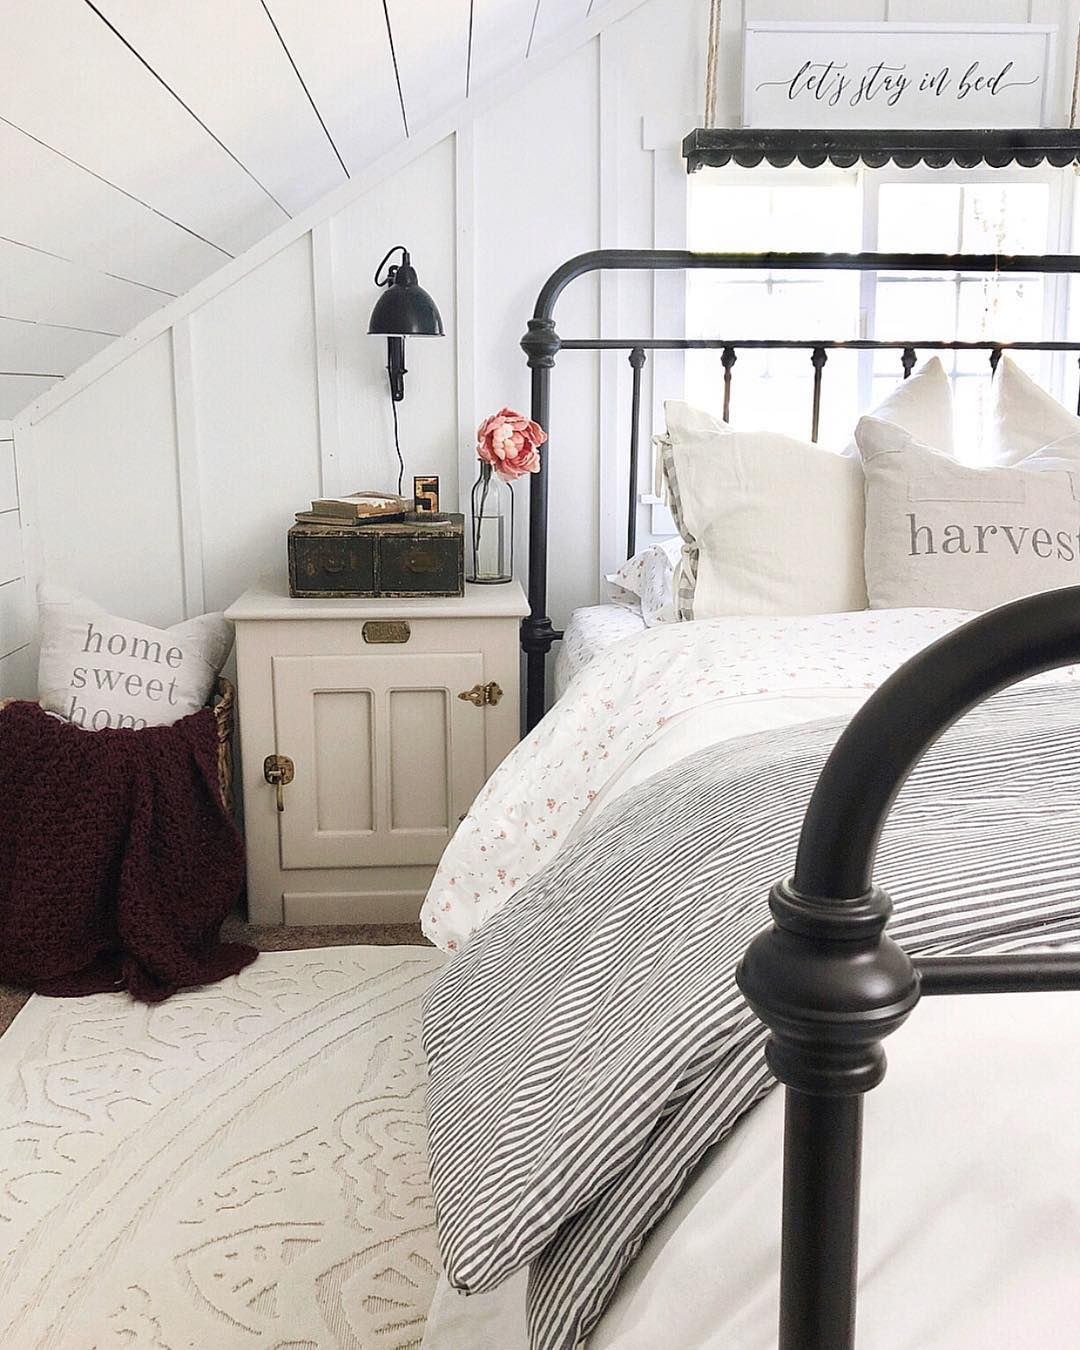 Pin by 𝙲𝚊𝚜𝚎𝚢 𝙷𝚞𝚏𝚏𝚖𝚊𝚗 on house & home // Stay in bed, Bed